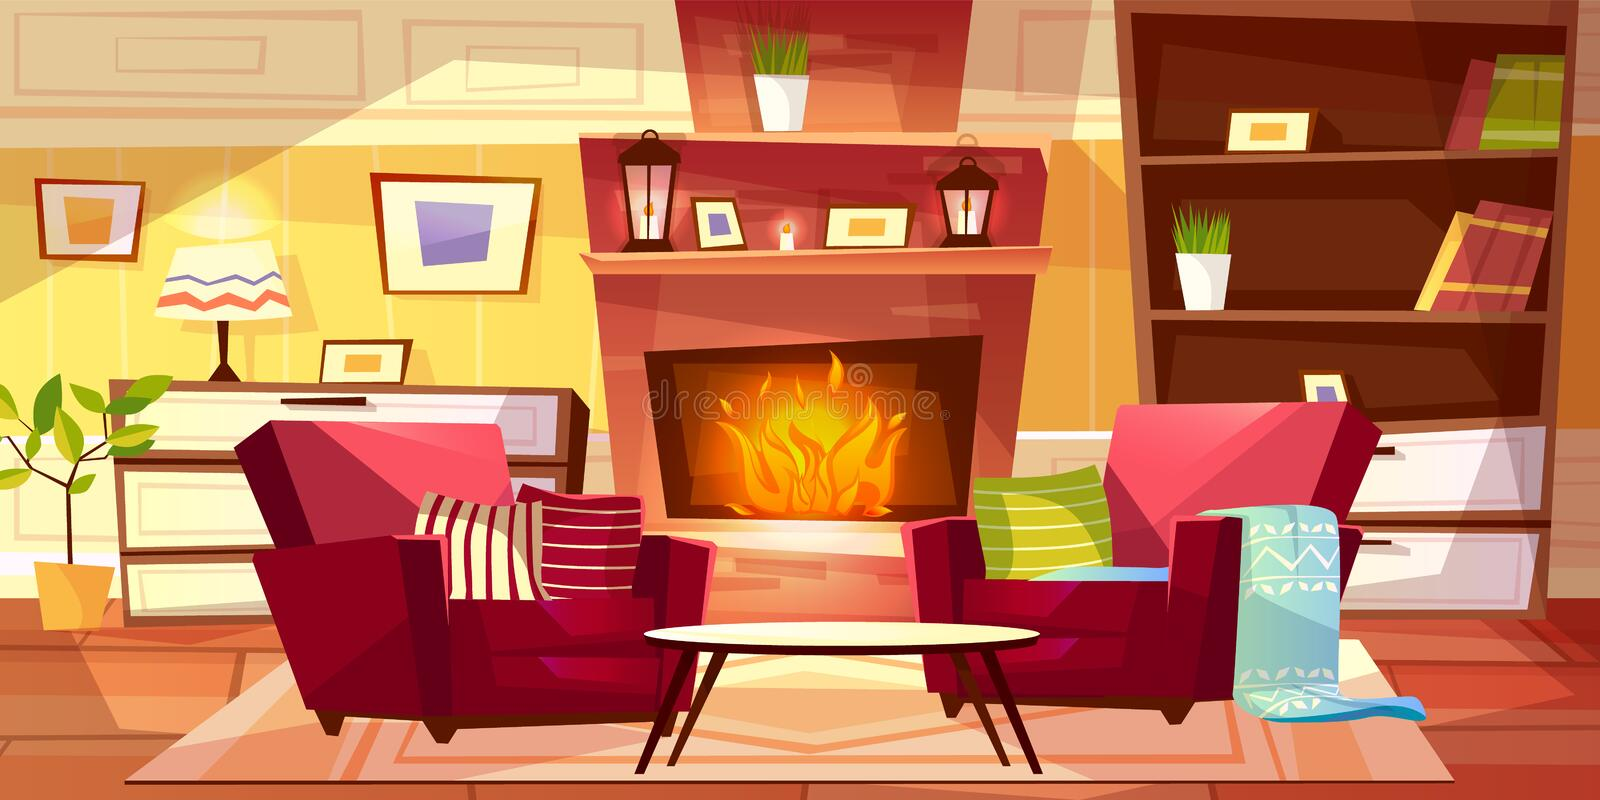 Living room interior vector illustration. Of cozy modern or retro apartments and furniture. Cartoon background of armchairs at fireplace, table and bookshelf royalty free illustration